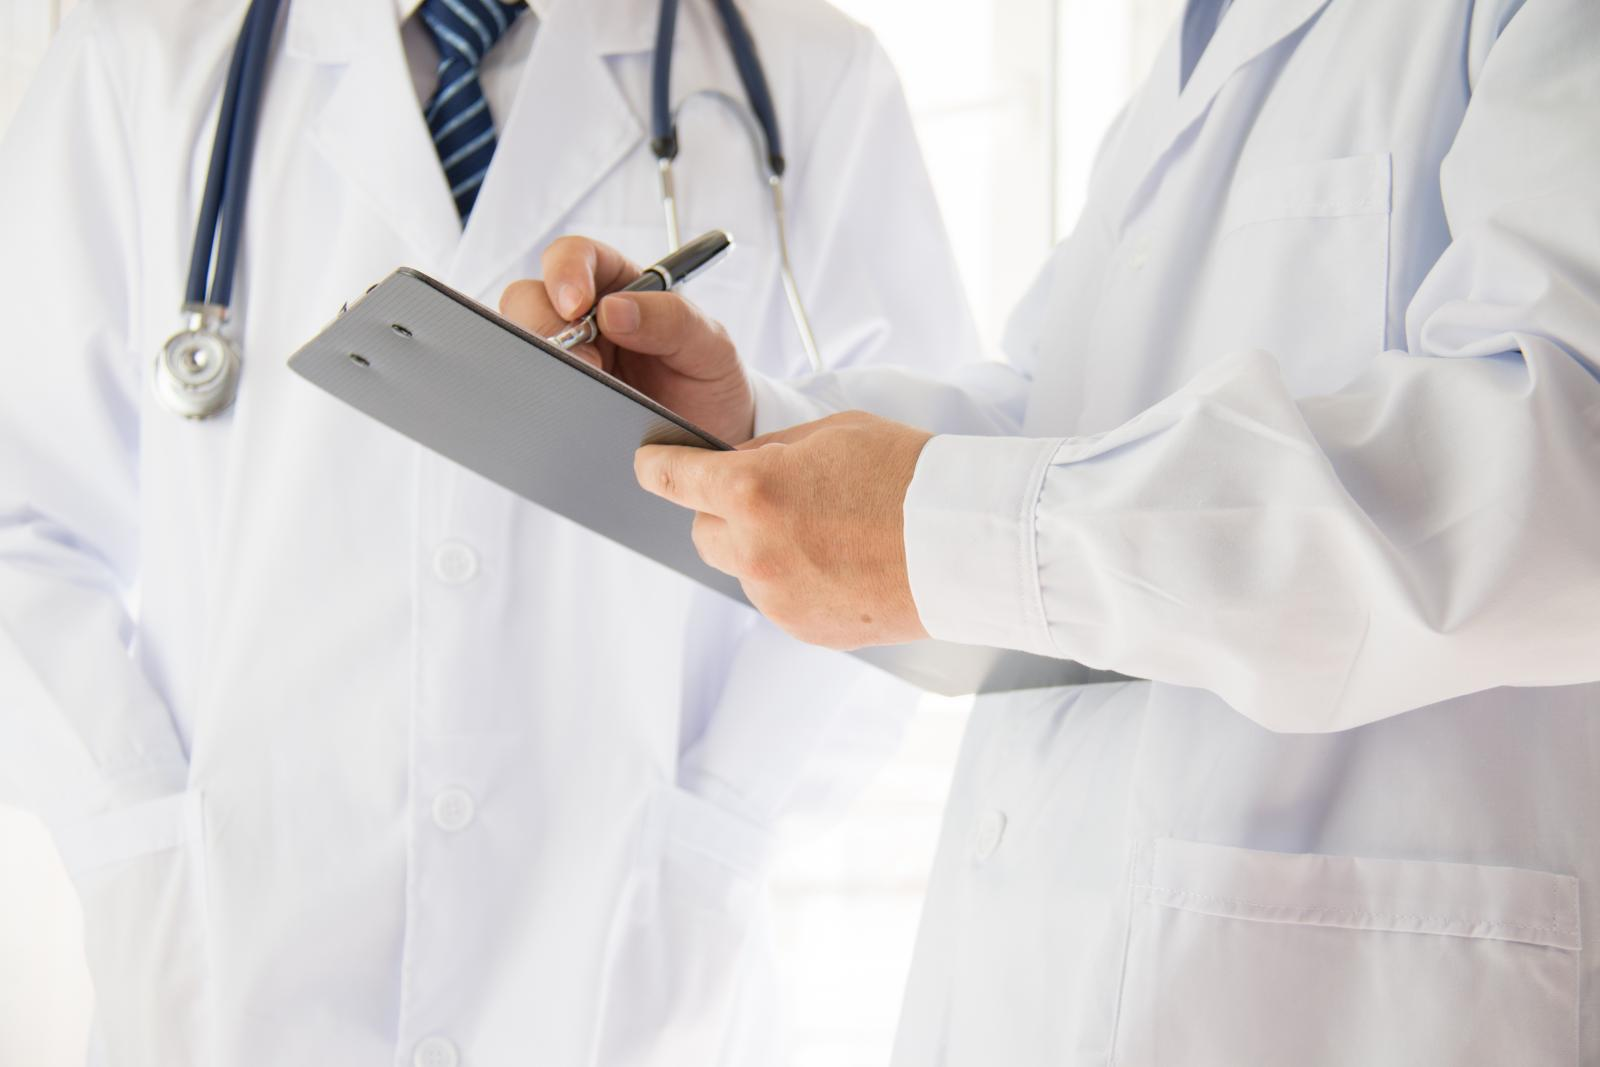 Stewardship-Led Communication Improves Outcomes for Patients With Positive Cultures